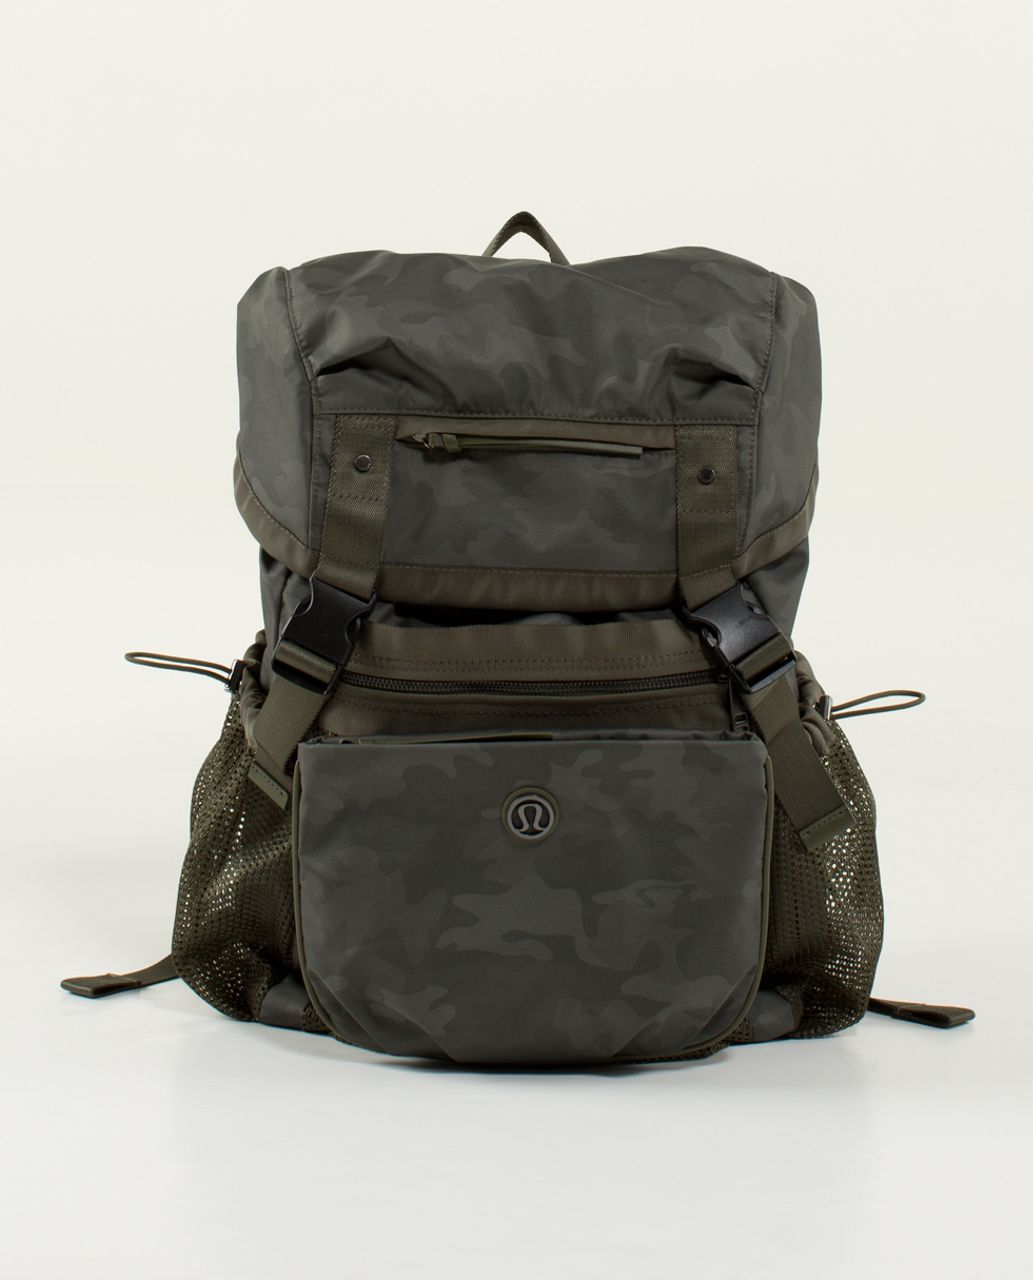 Lululemon Travelling Yogini Rucksack - Savasana Camo 20cm Fatigue Green